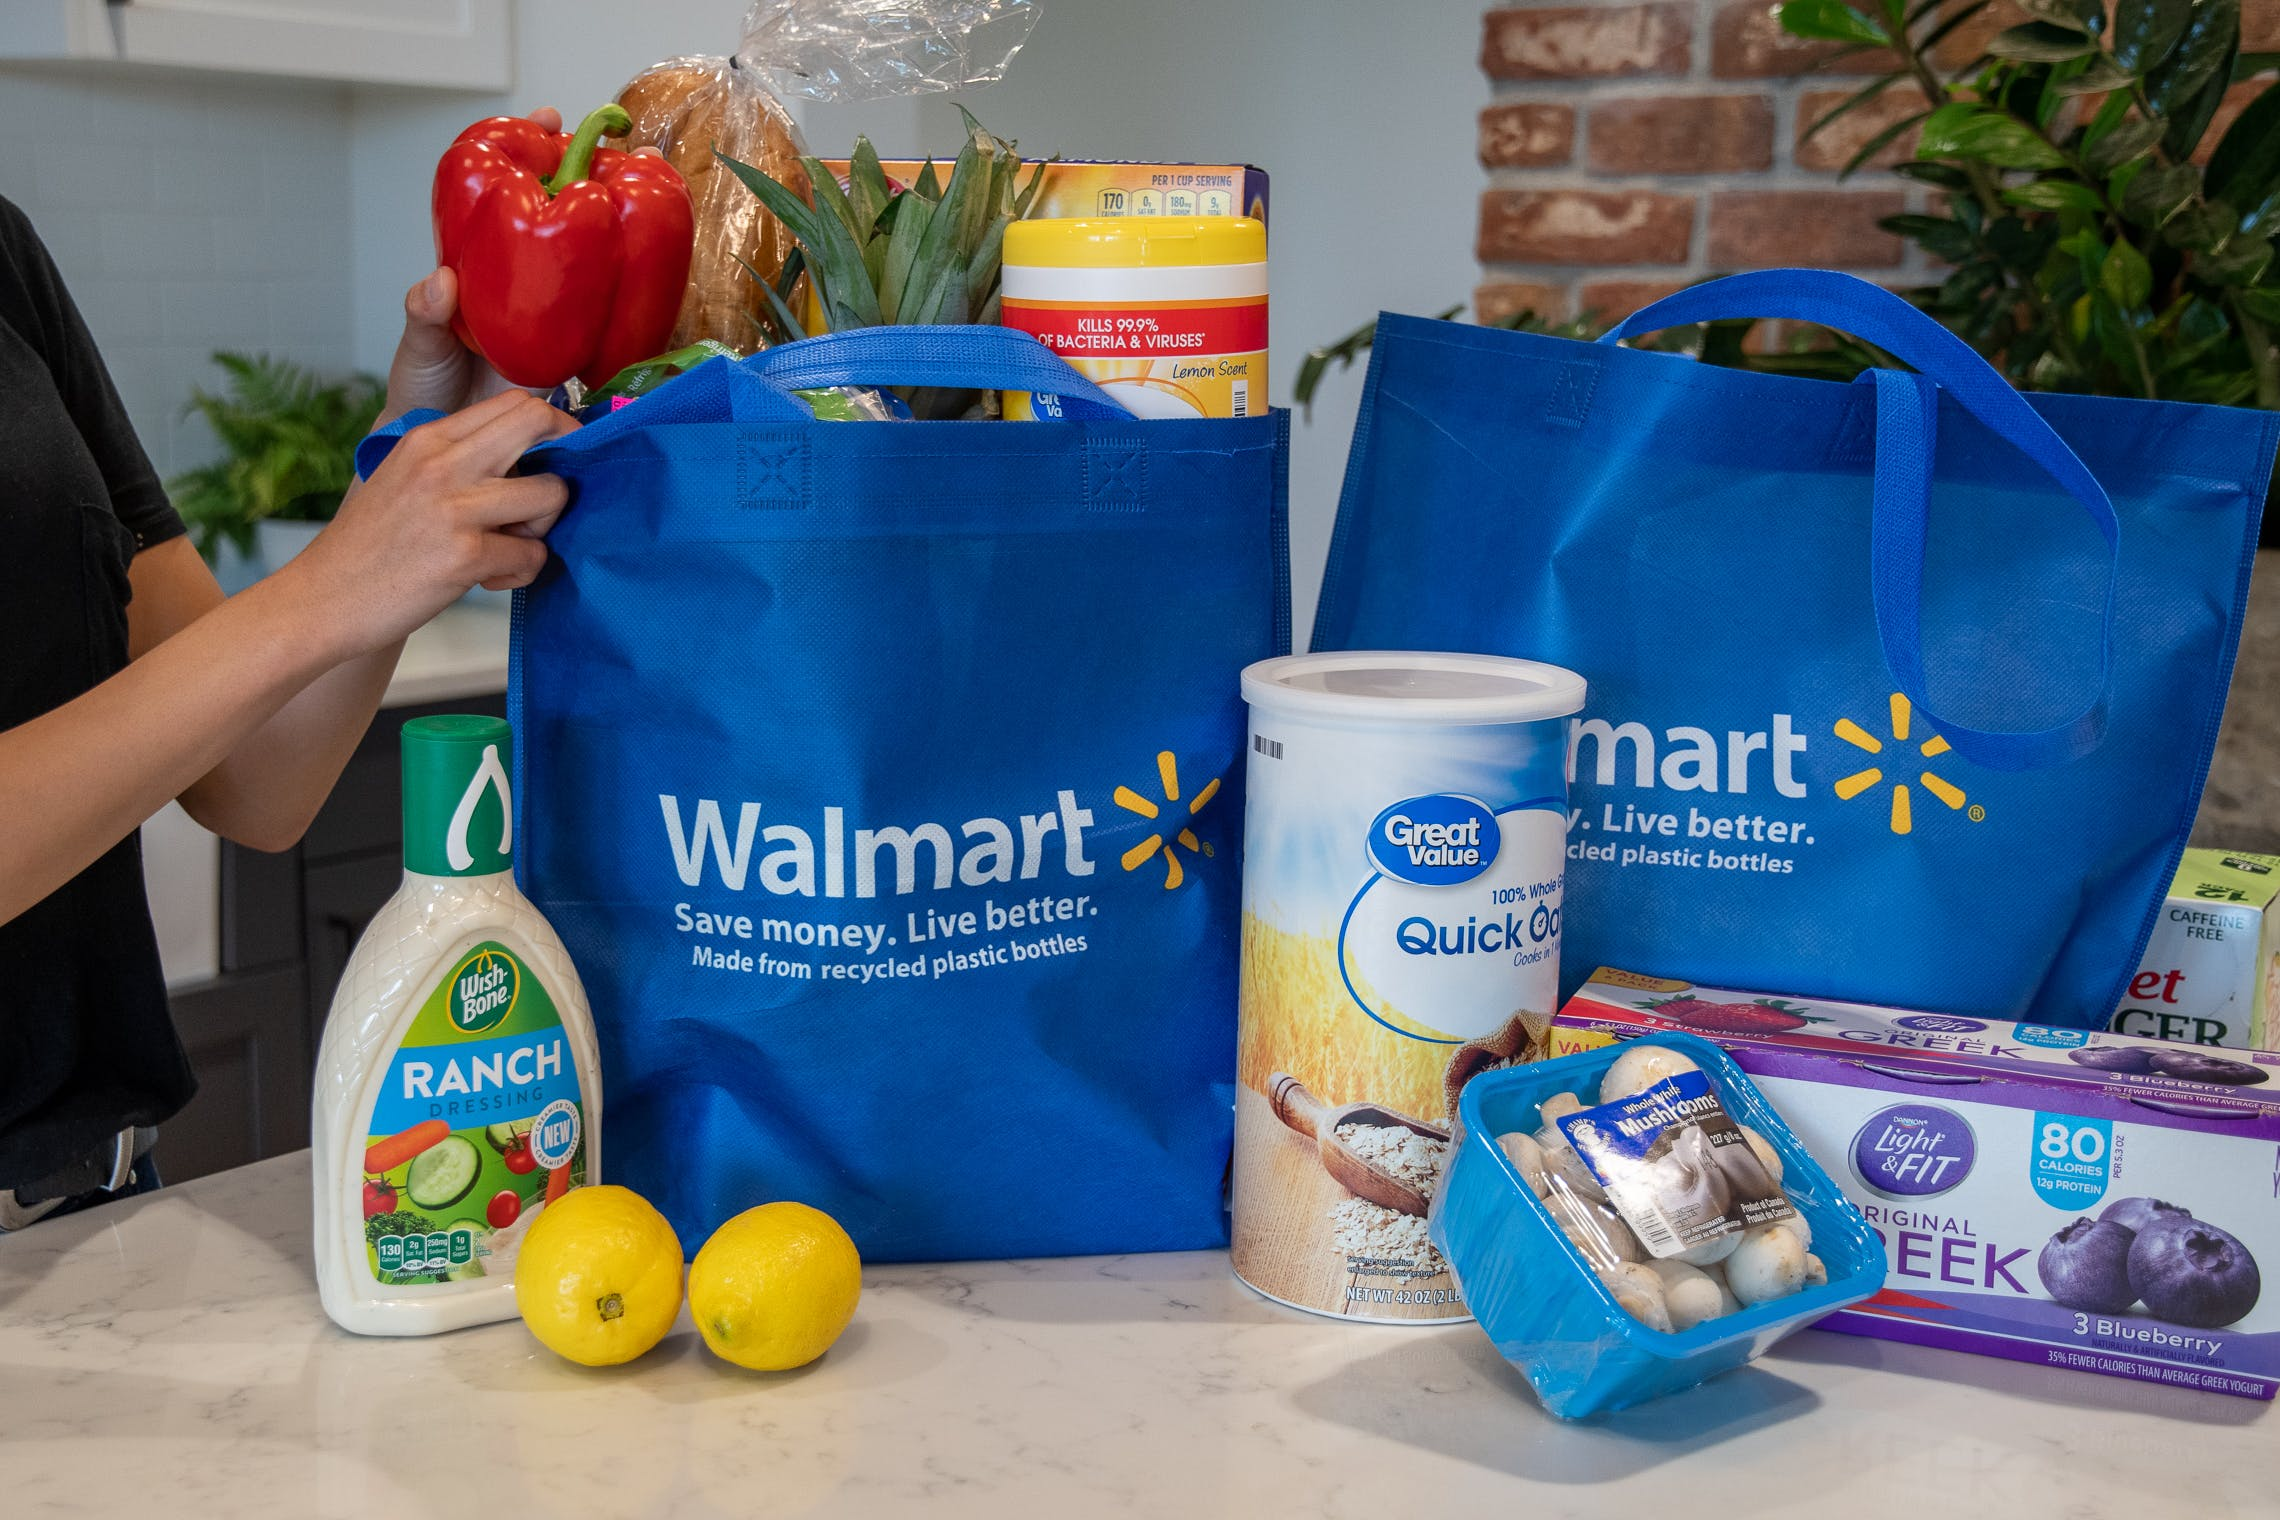 walmart grocery delivery bags 27 1591125654 1591125654